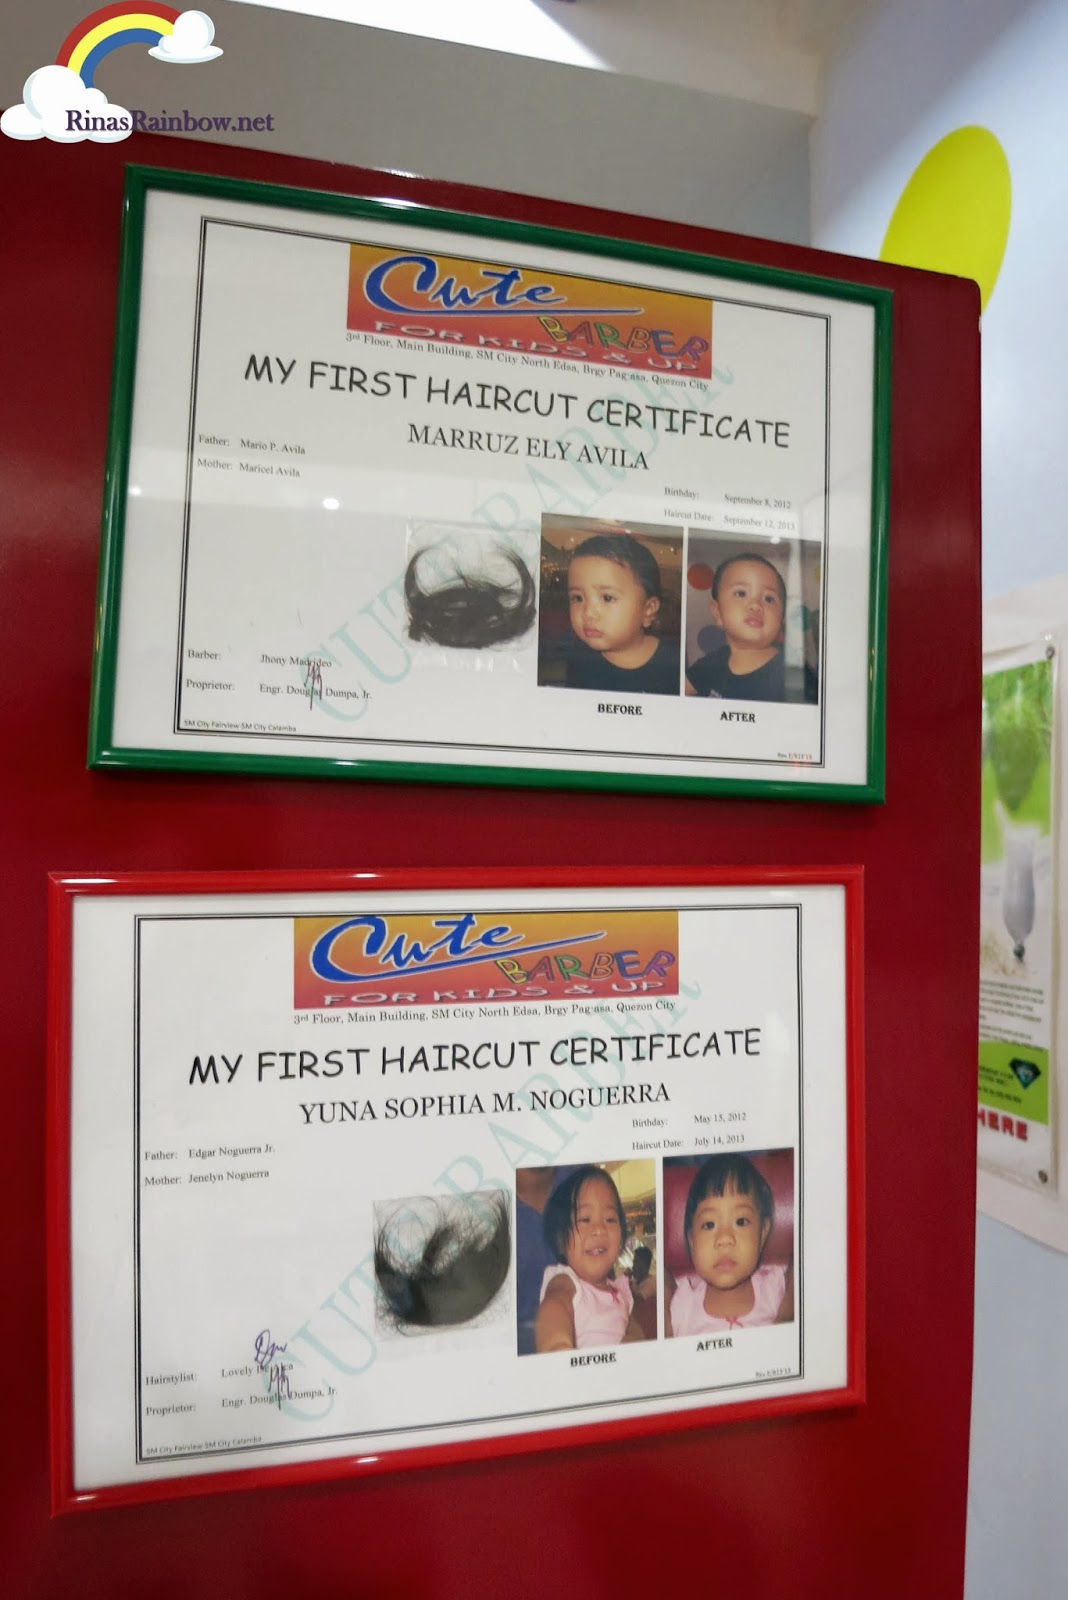 First haircut certificate template haircuts network wiring diagram first haircut certificate free my sample pay slip construction 1st haircut 0239 first haircut certificate free xflitez Gallery